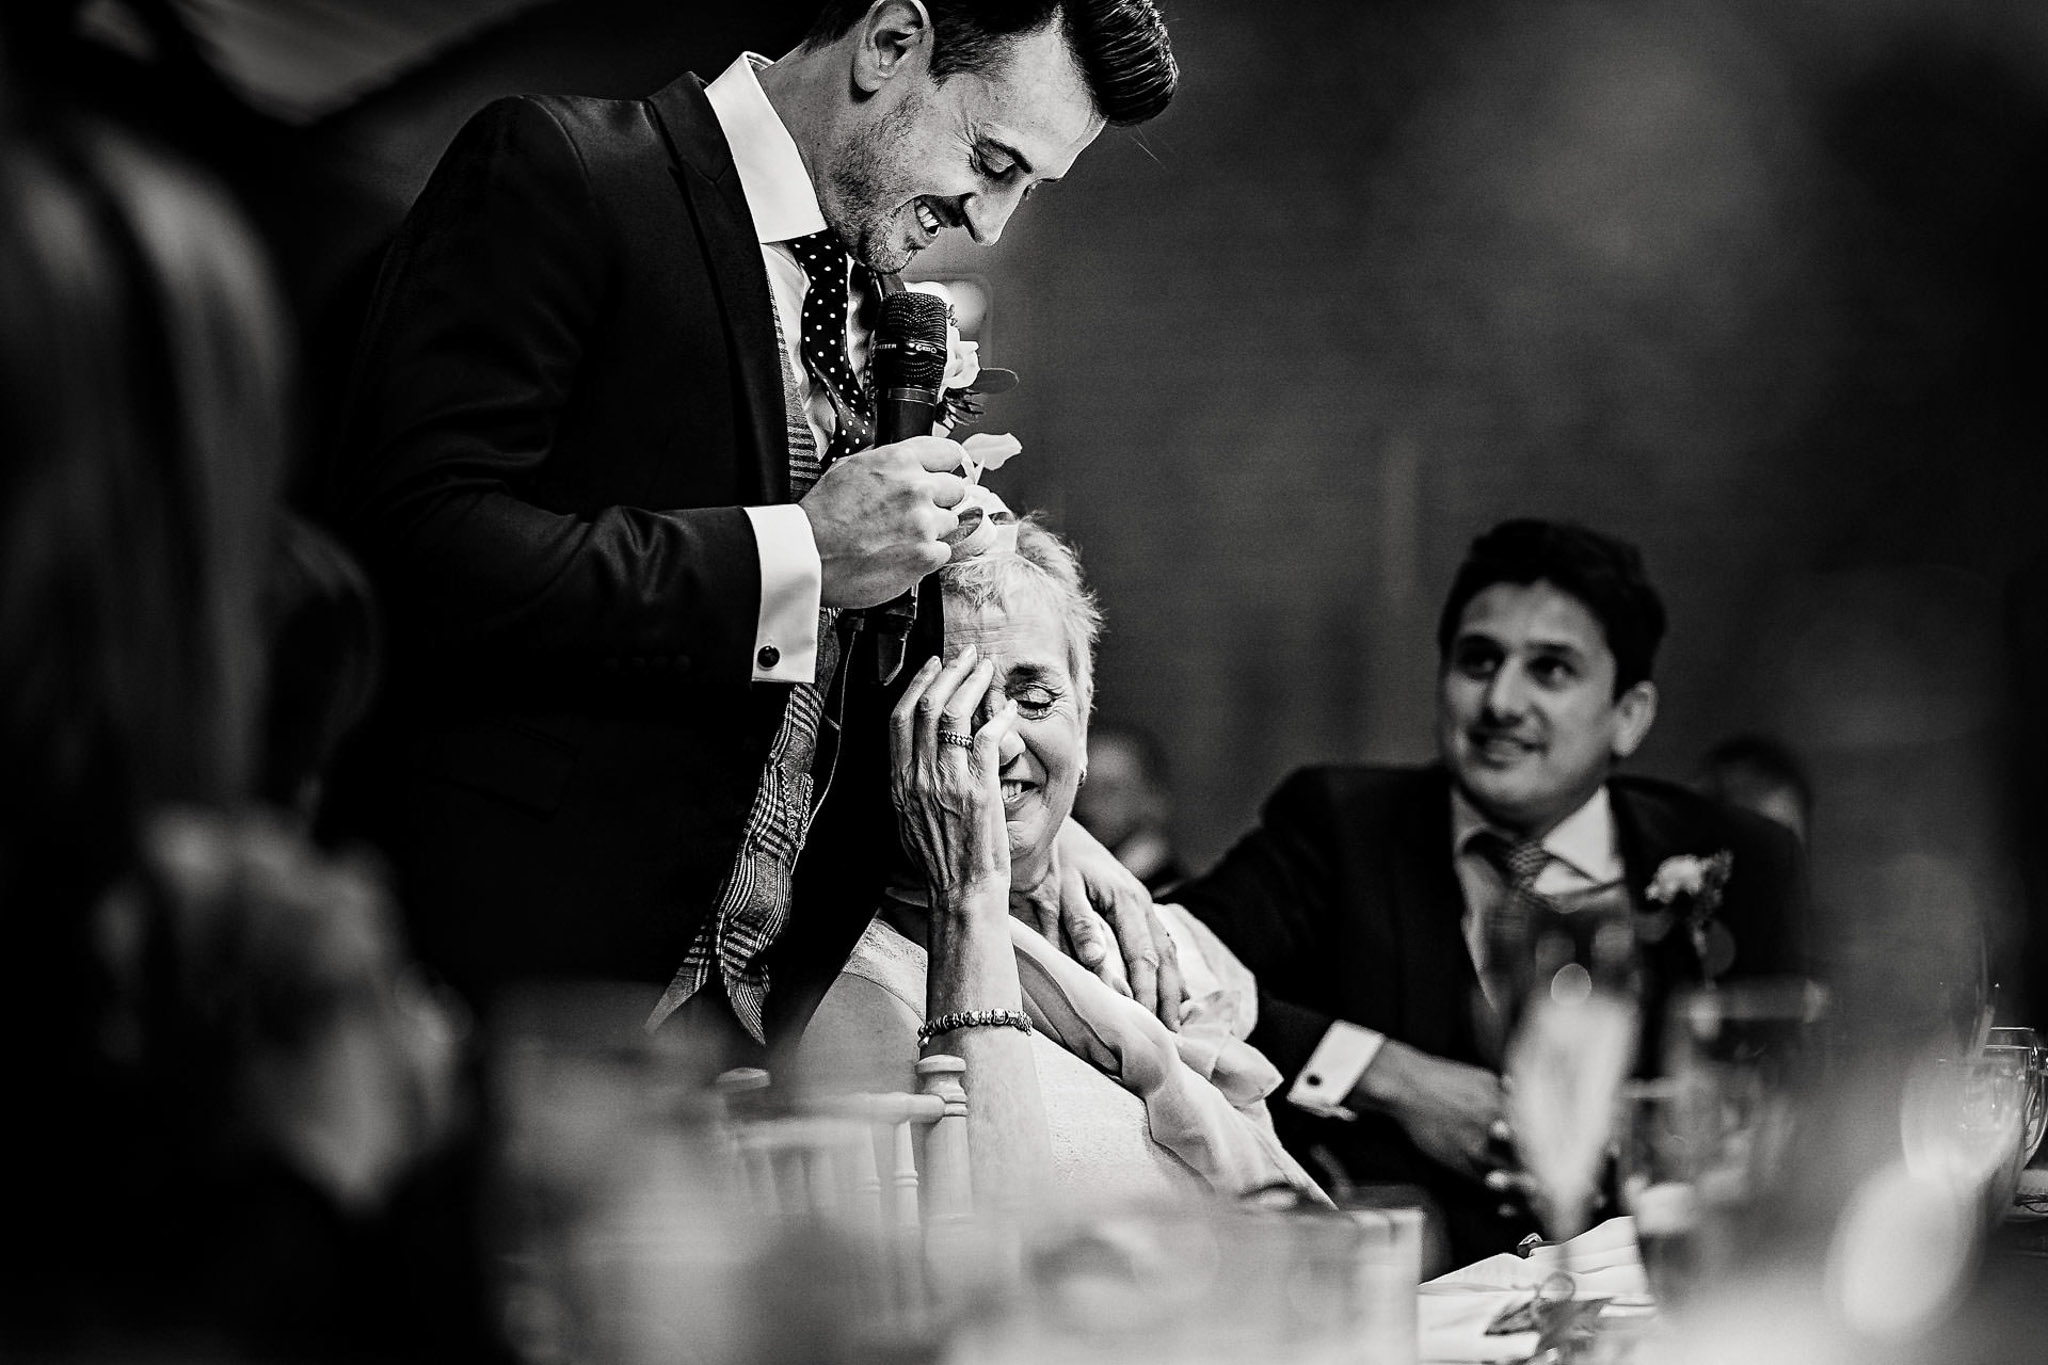 Groom and mom share a moment - photo by Andrew Billington Photography